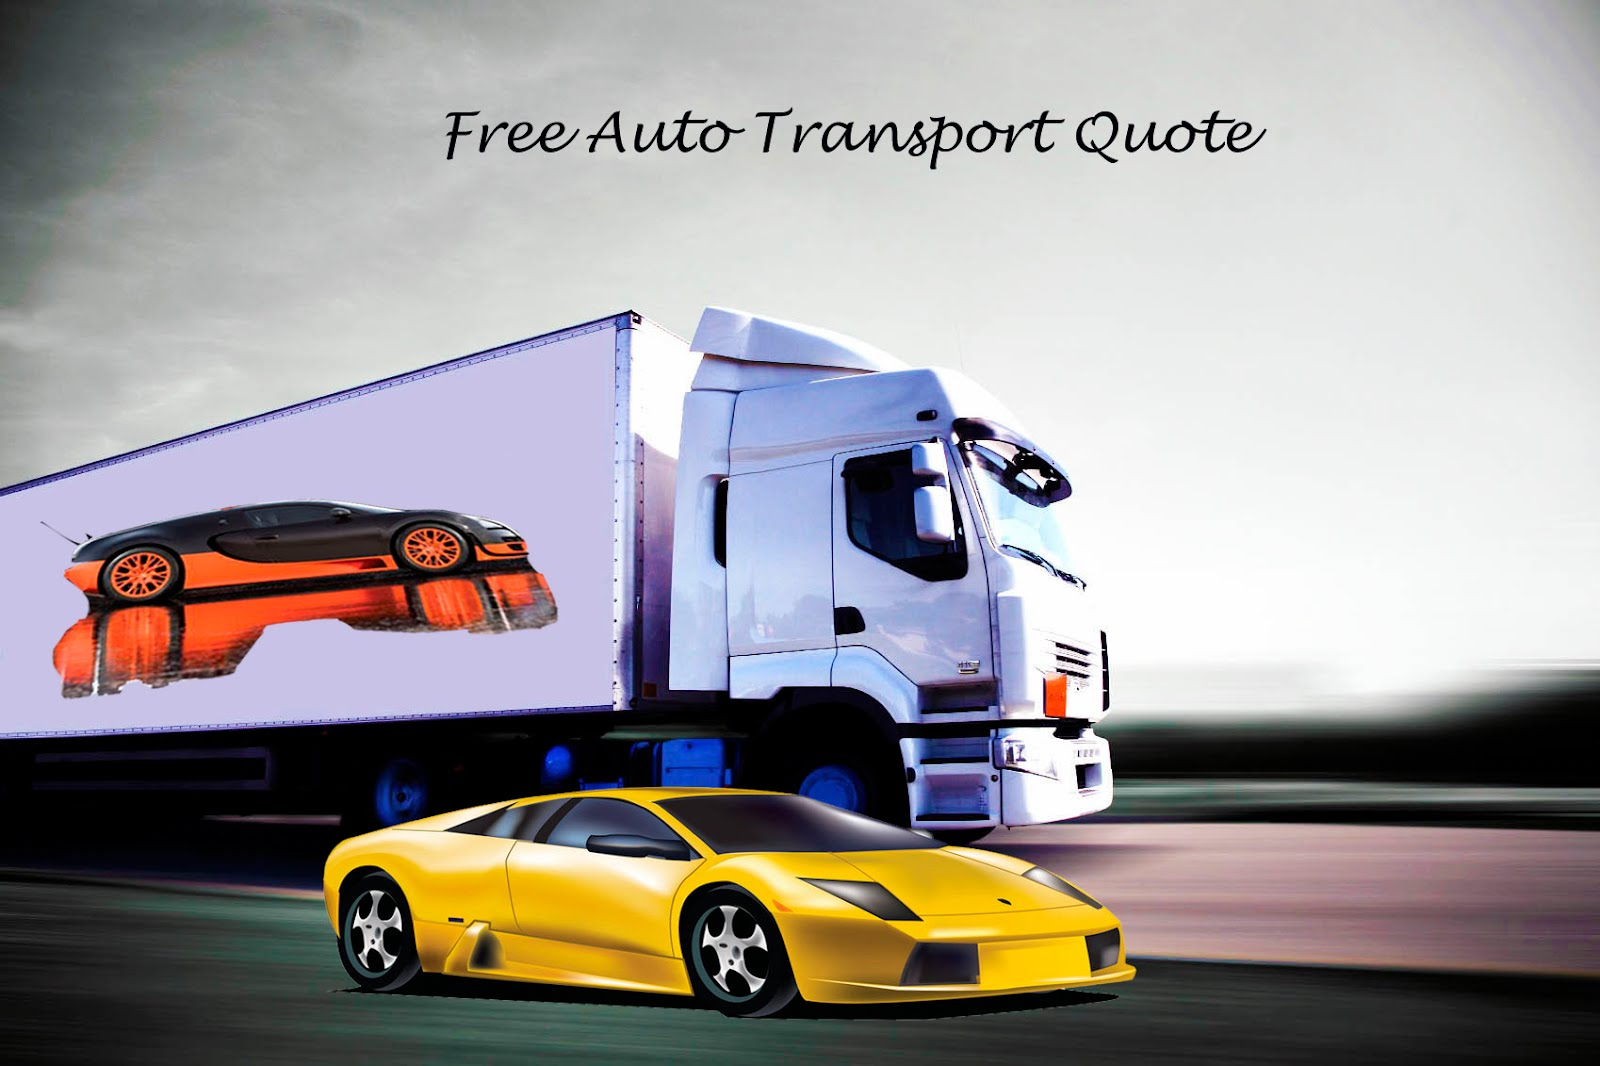 Auto Transport Quotes September 2012  Free Auto Transport Quotes